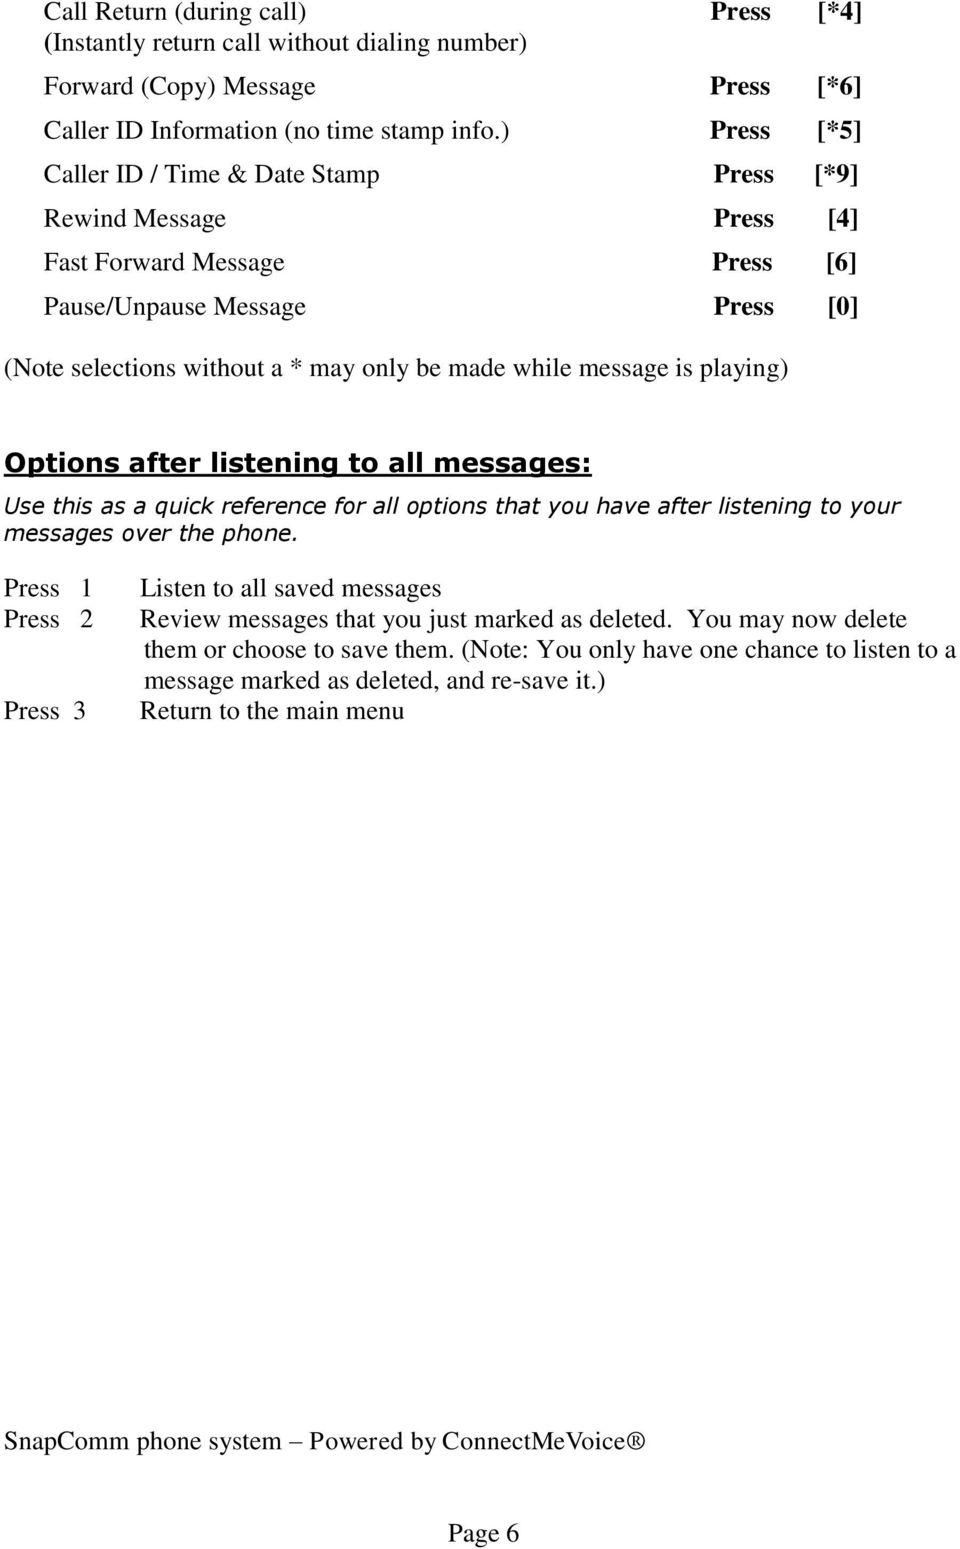 message is playing) Options after listening to all messages: Use this as a quick reference for all options that you have after listening to your messages over the phone.